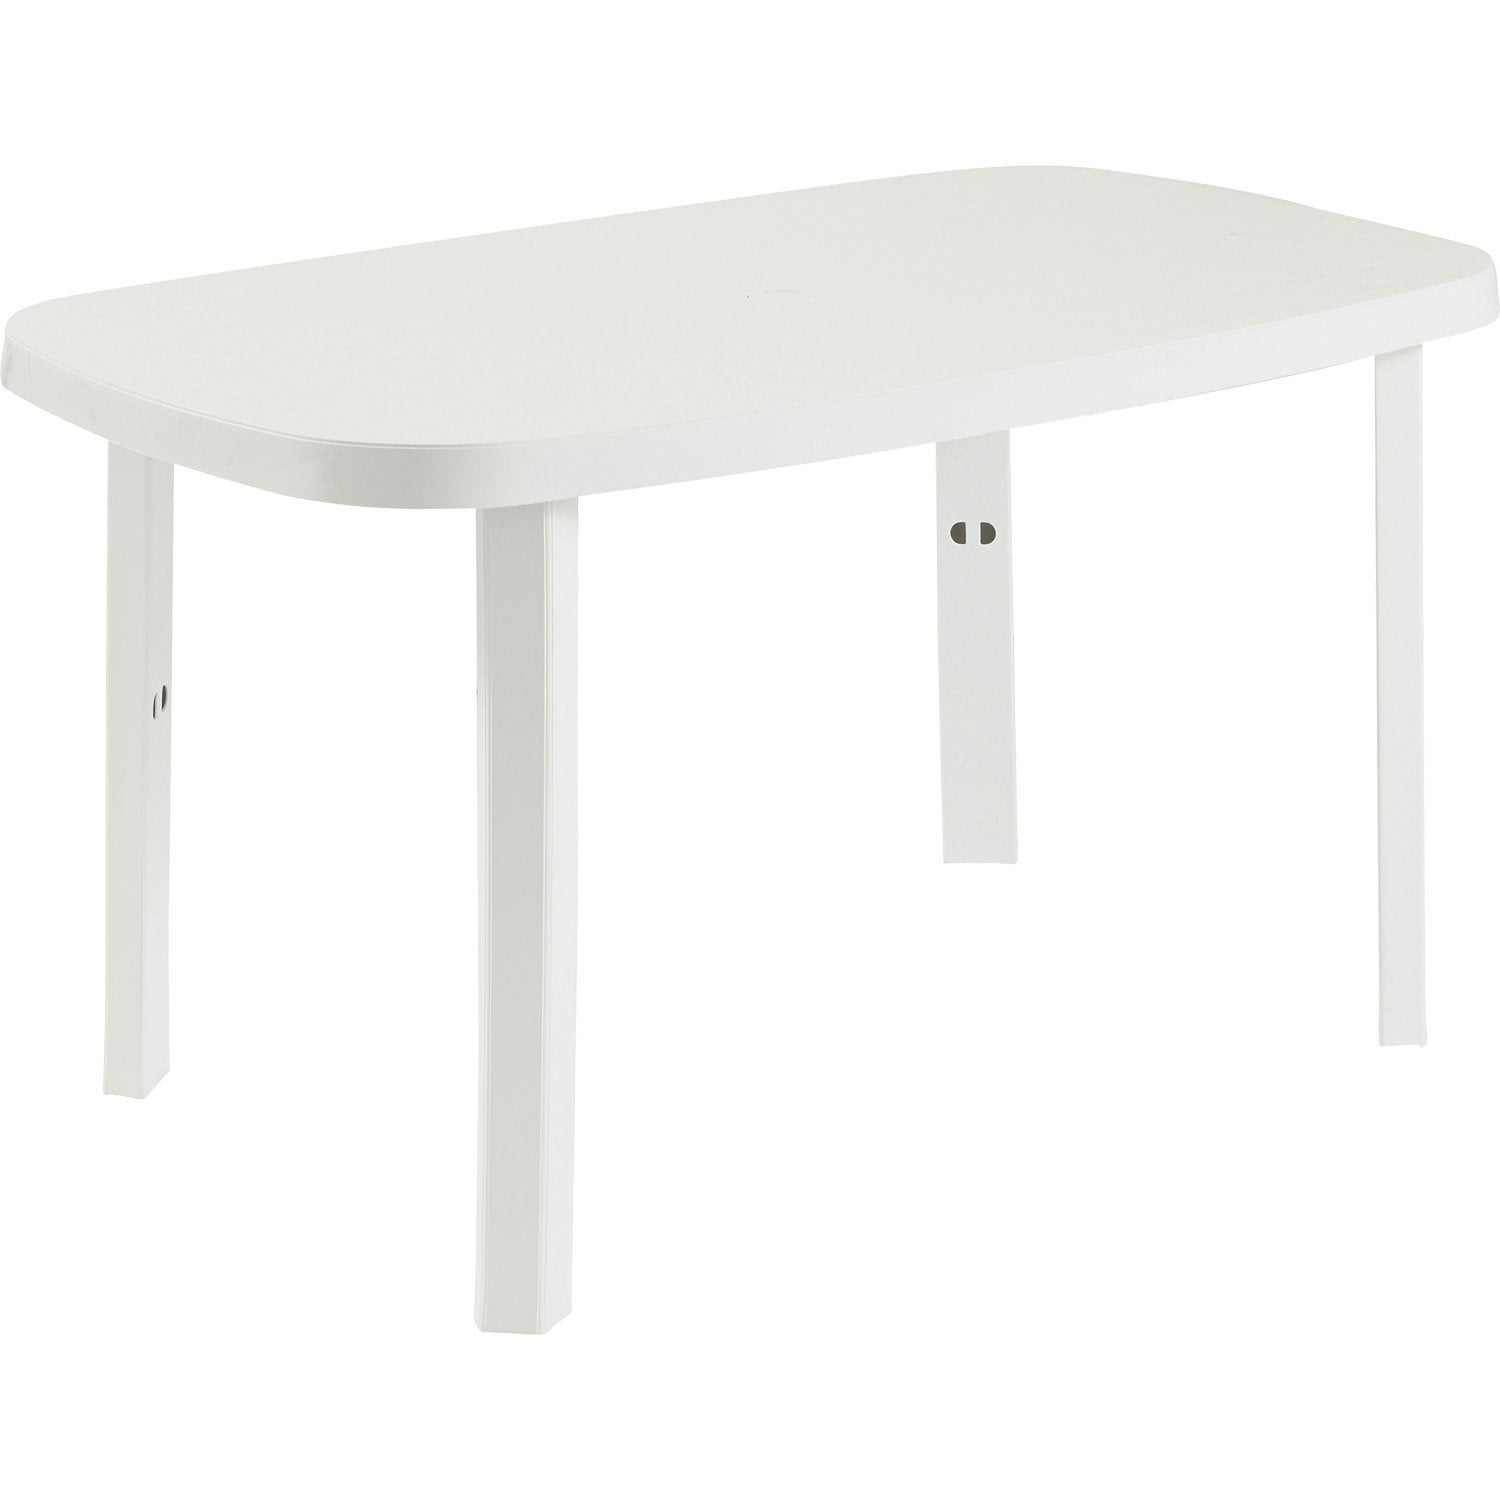 table basse de jardin en plastique blanc. Black Bedroom Furniture Sets. Home Design Ideas